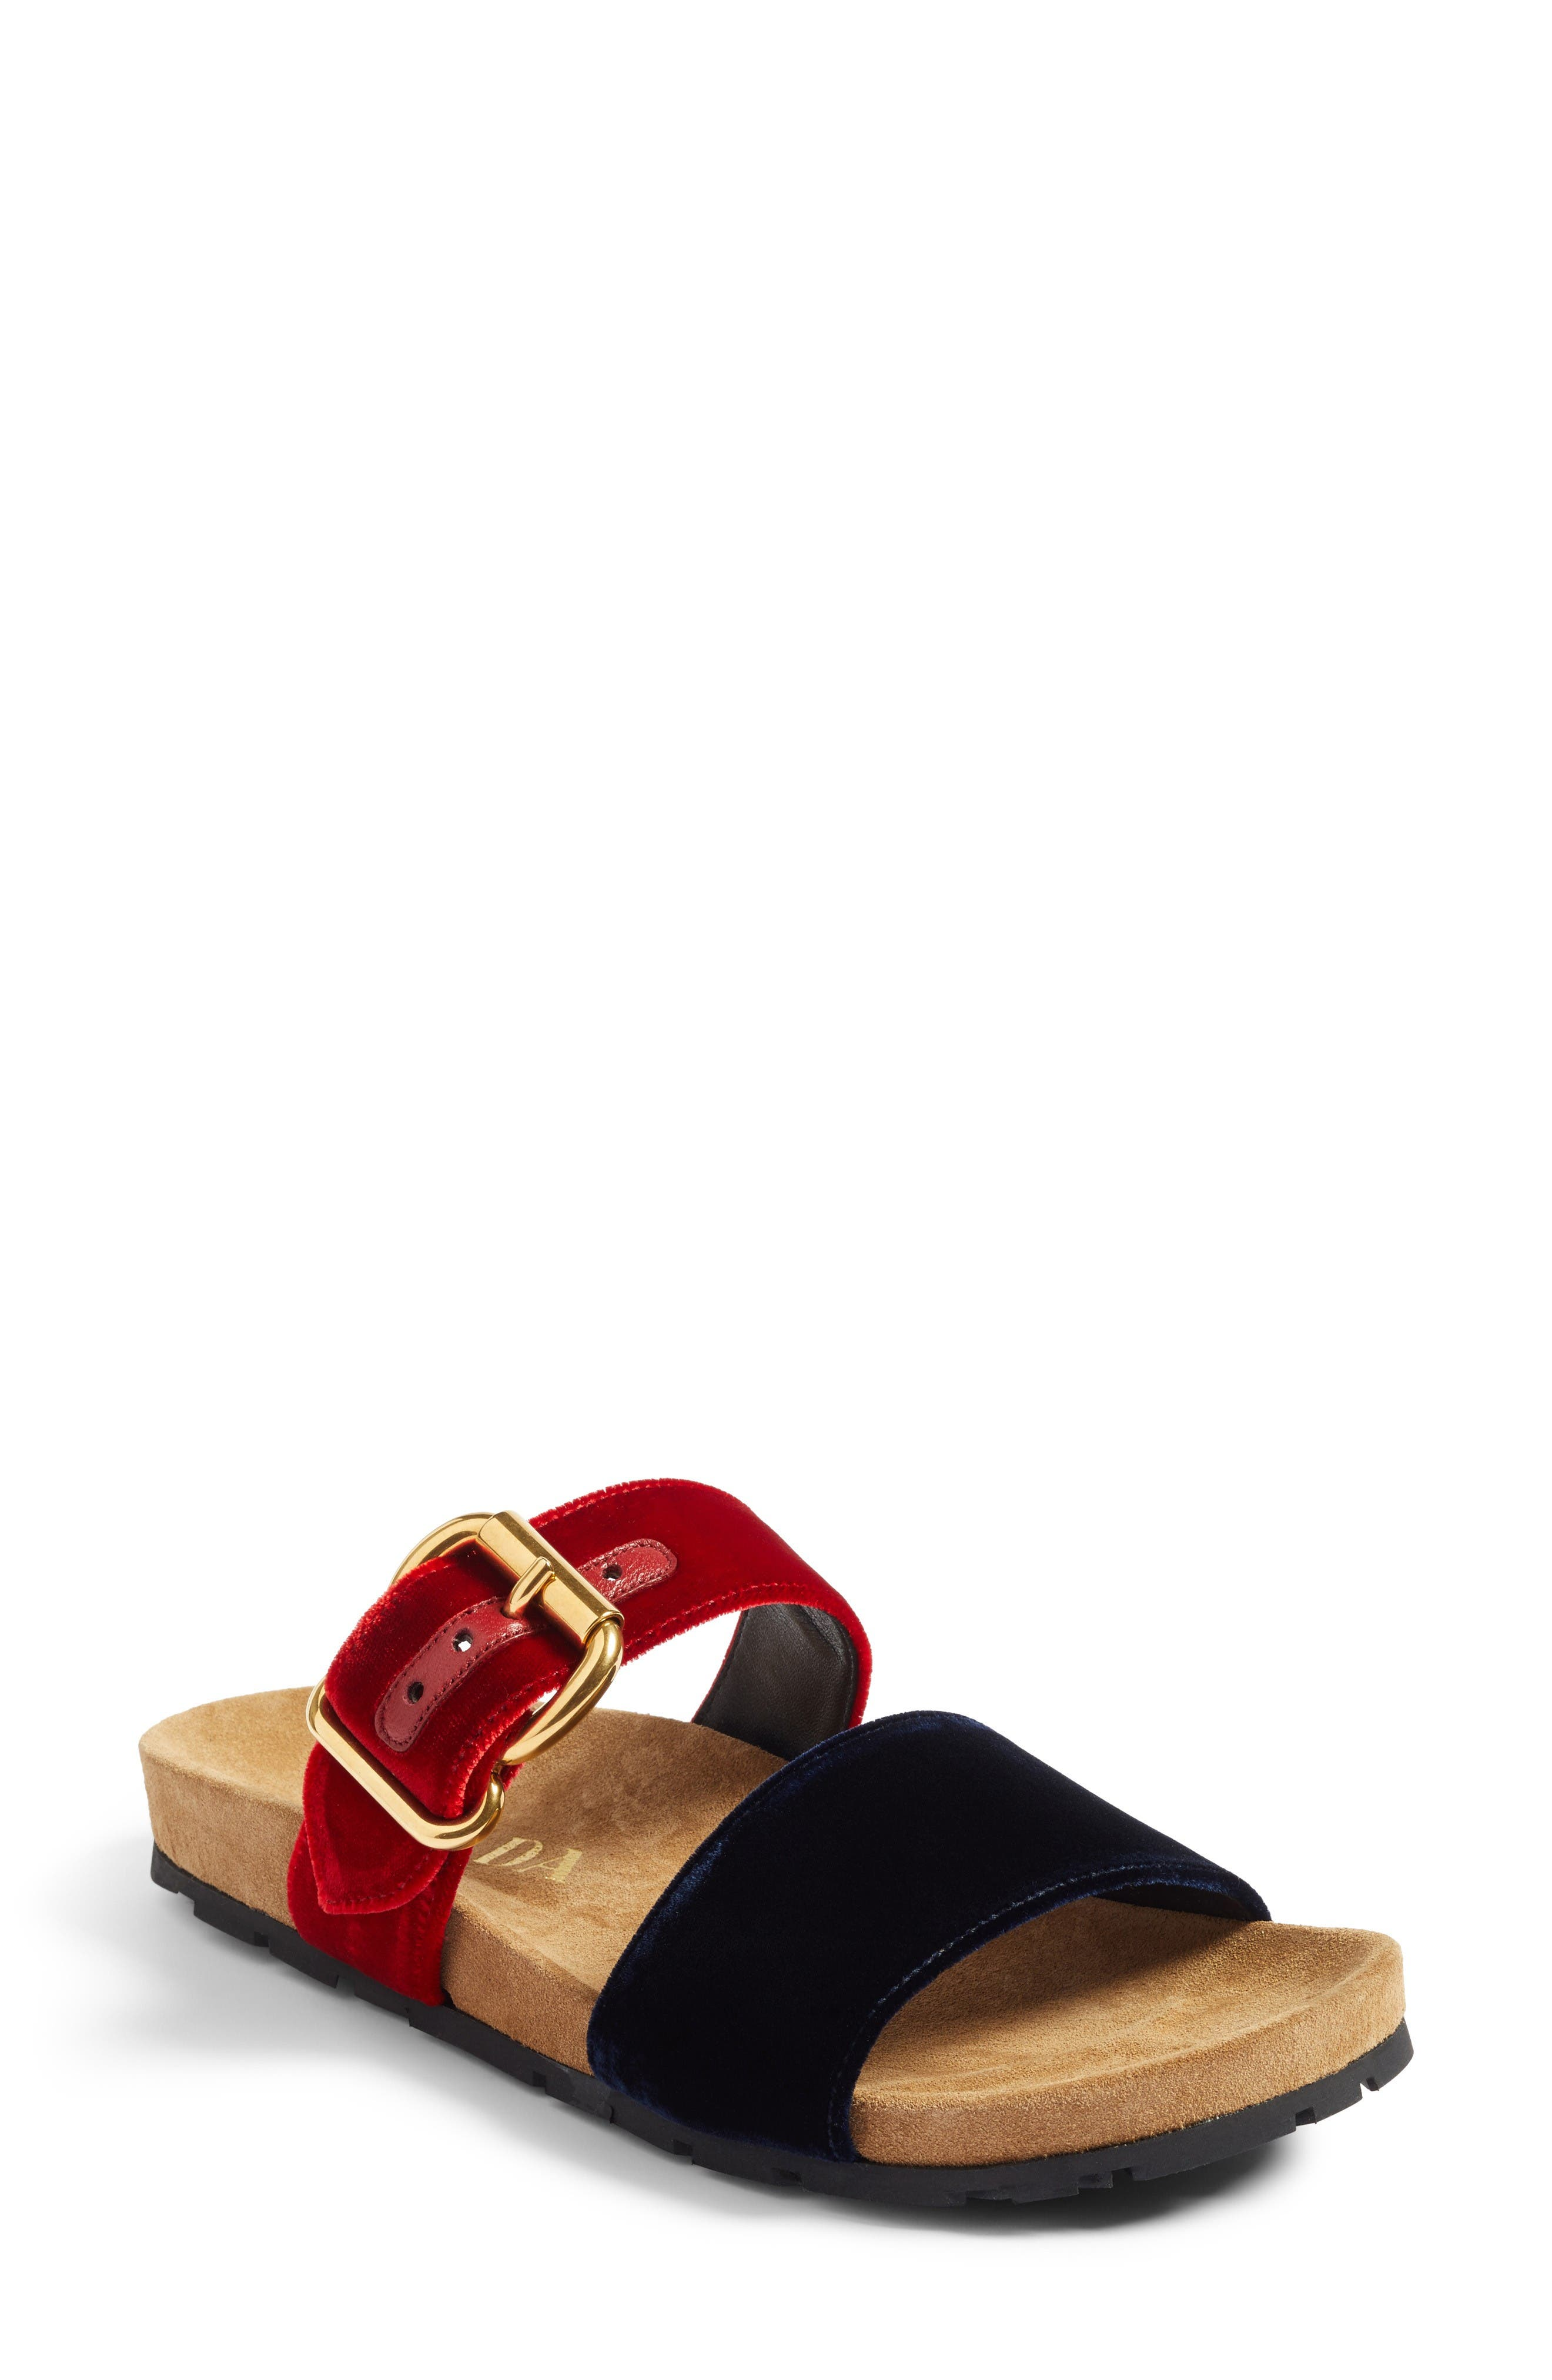 Prada Double Band Slide Sandal (Women)